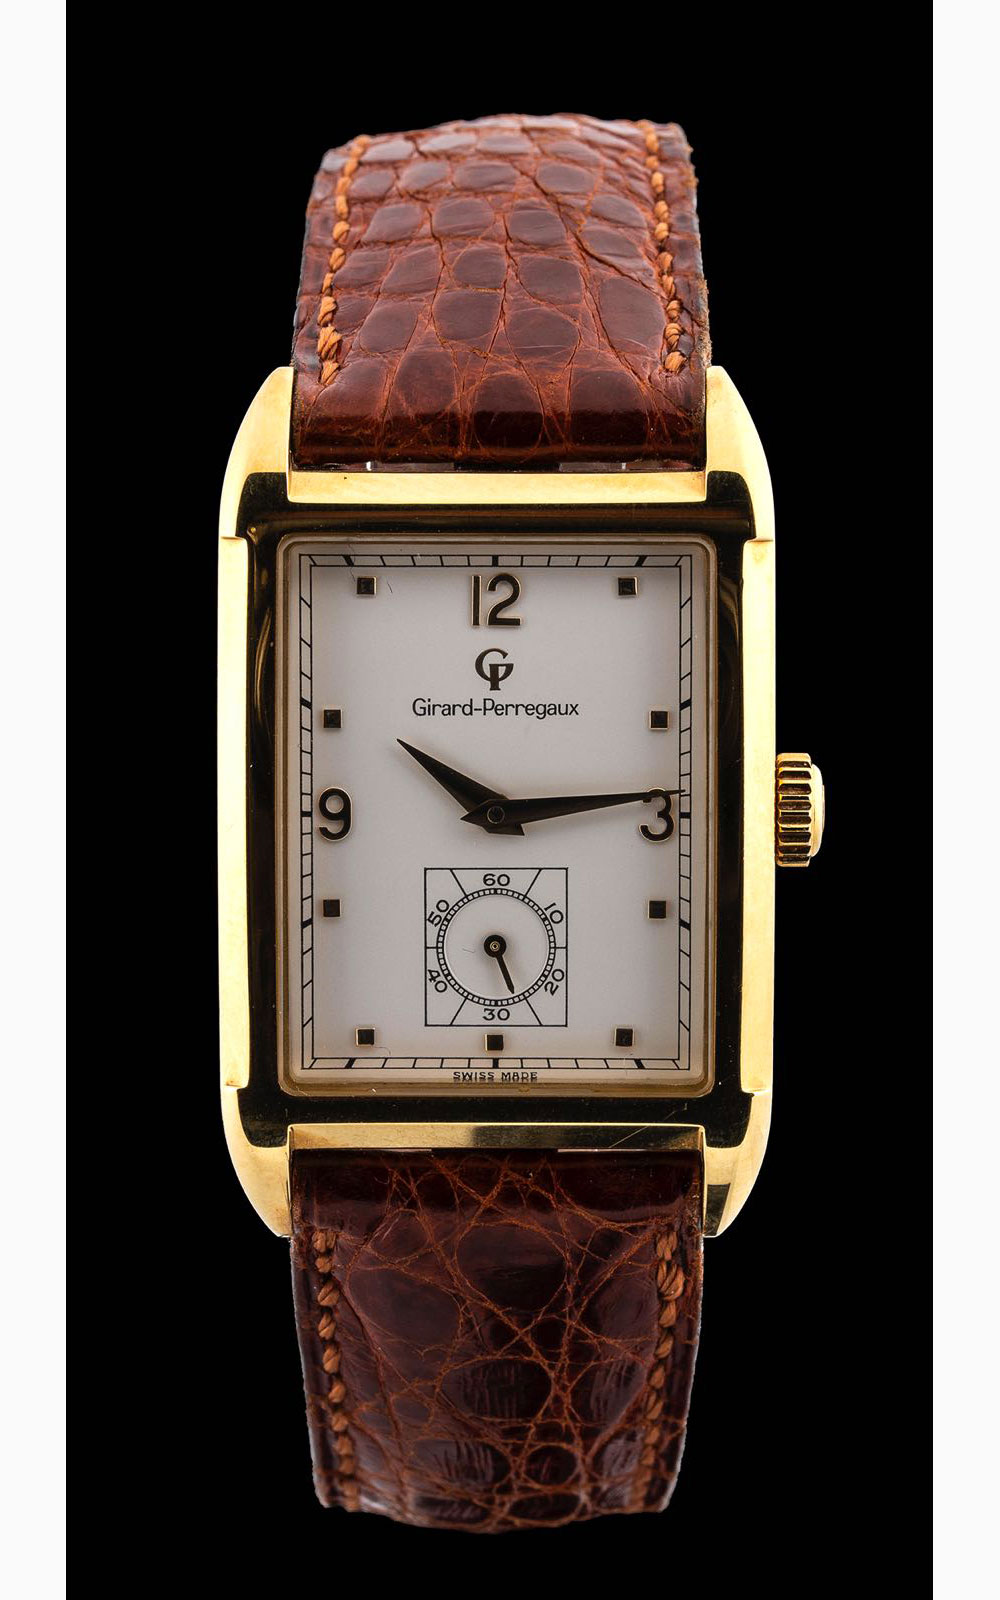 Girard Perregaux, 18 kt gold, 1791/1991 anniversary, Limited Edition, Ref.4961, Like N.O.S., full se